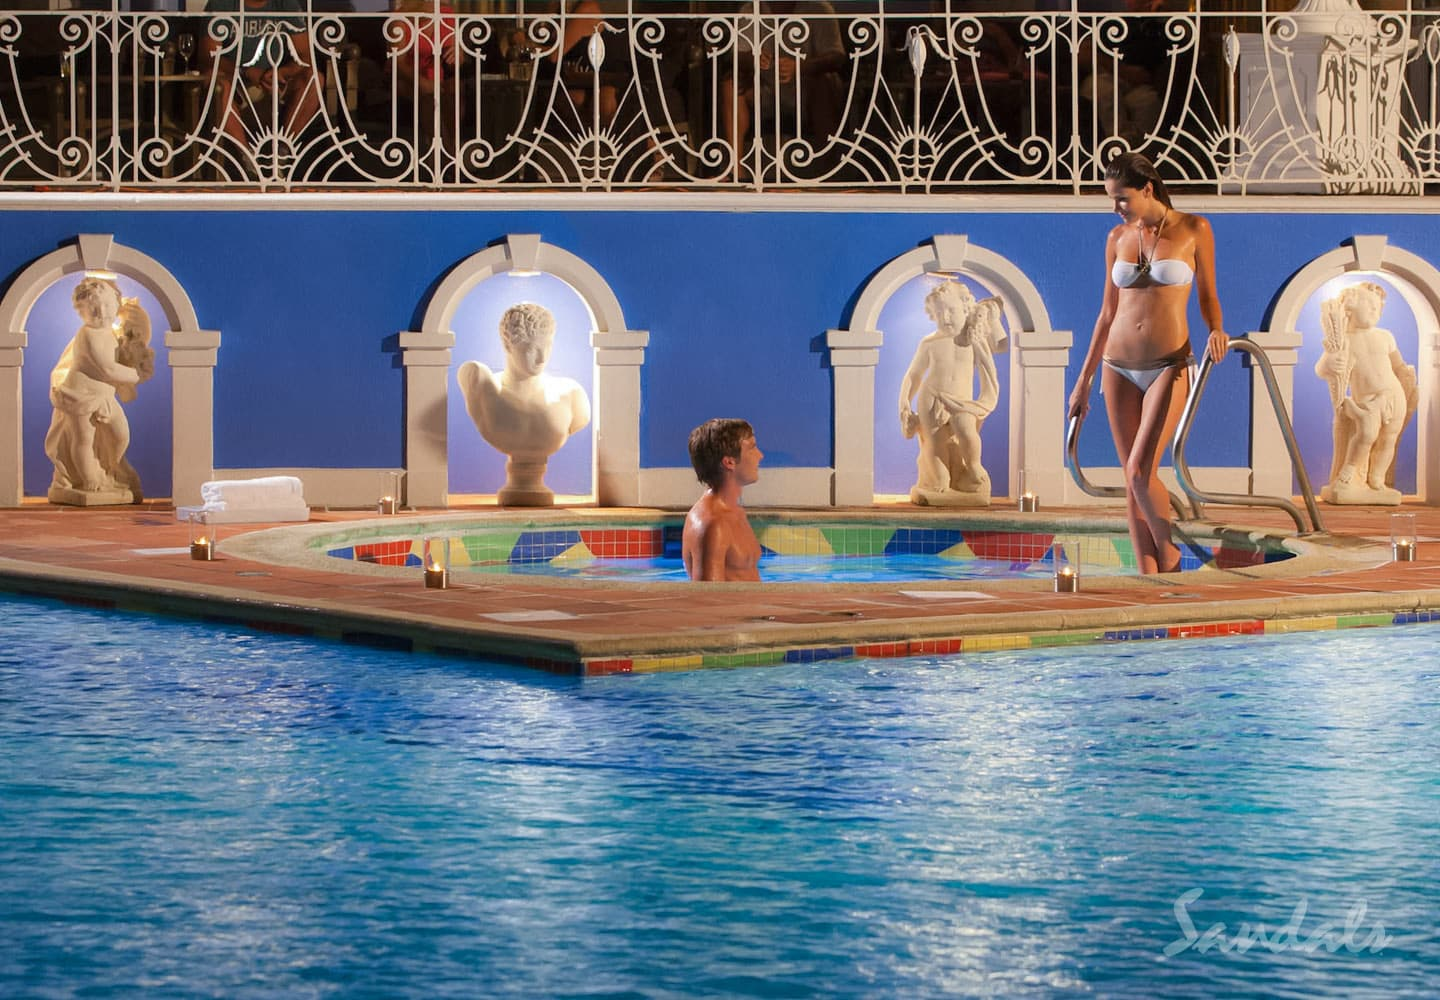 a couple in their private whirlpool at Sandals Royal Bahamian spa resort at the Bahamas, perfect location for luxury vacation packages, planned by Southern Travel Agency Augusta, GA